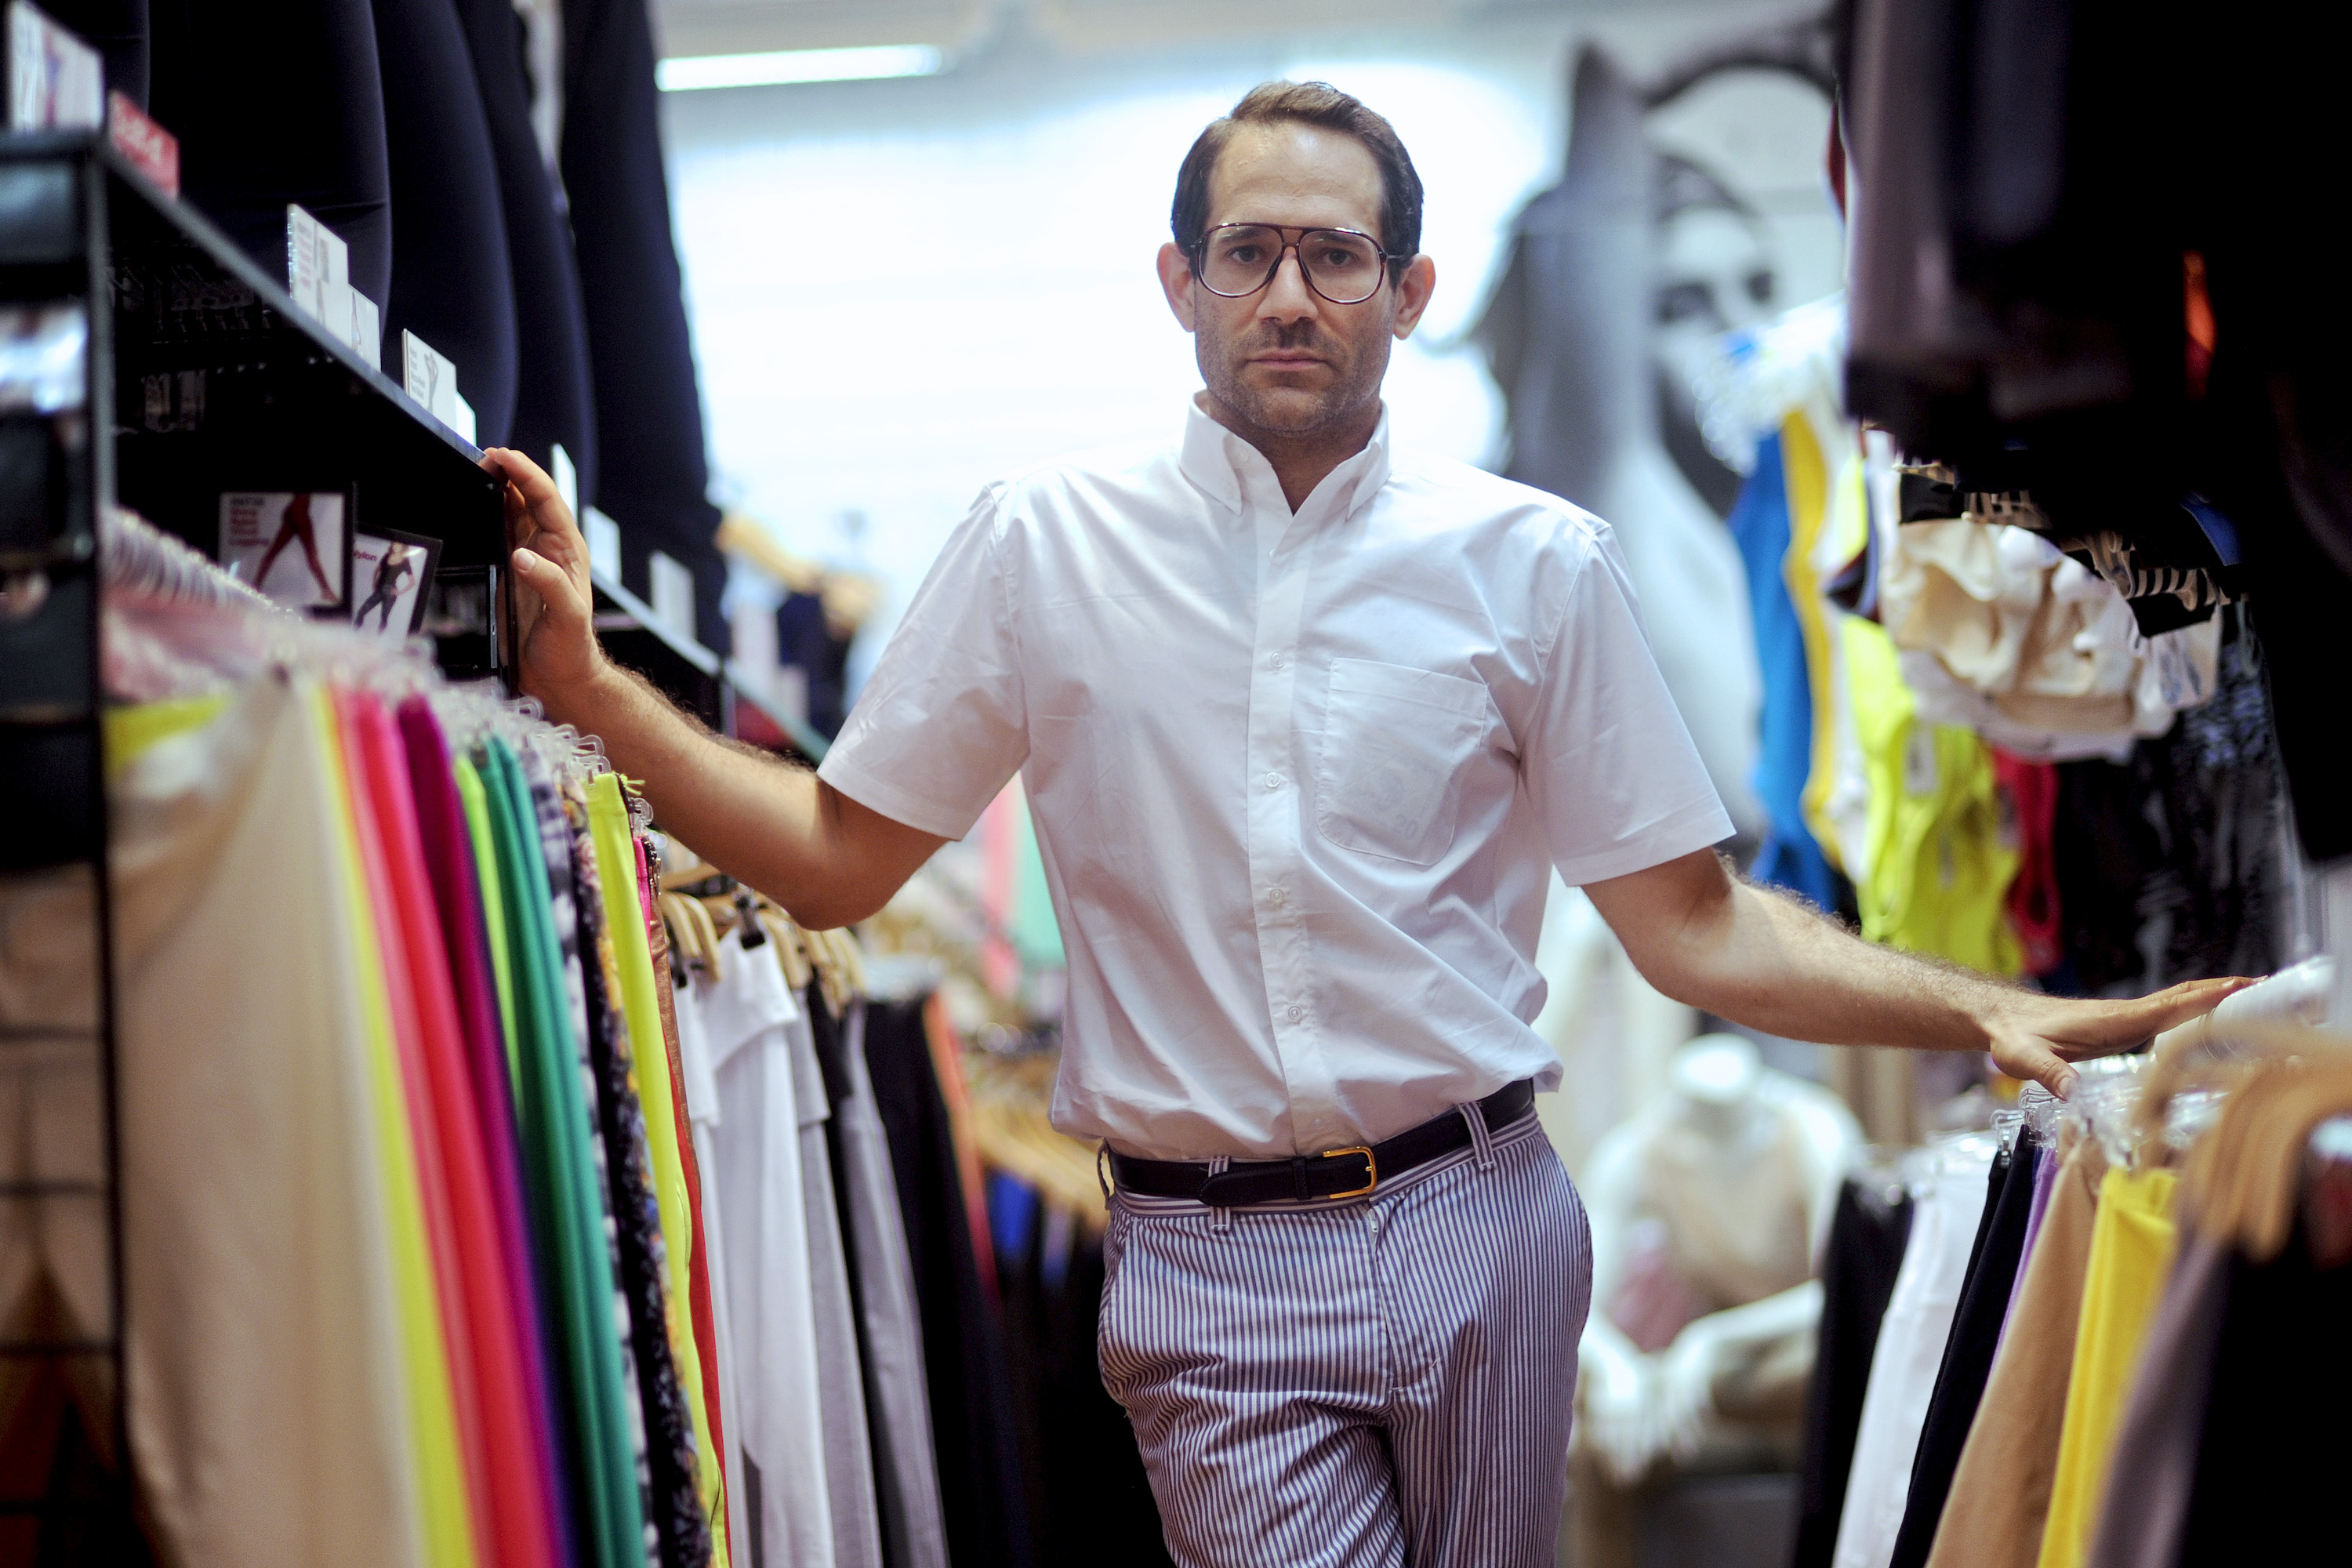 American Apparel Hipster Turns Preppy As Stock May Be Delisted